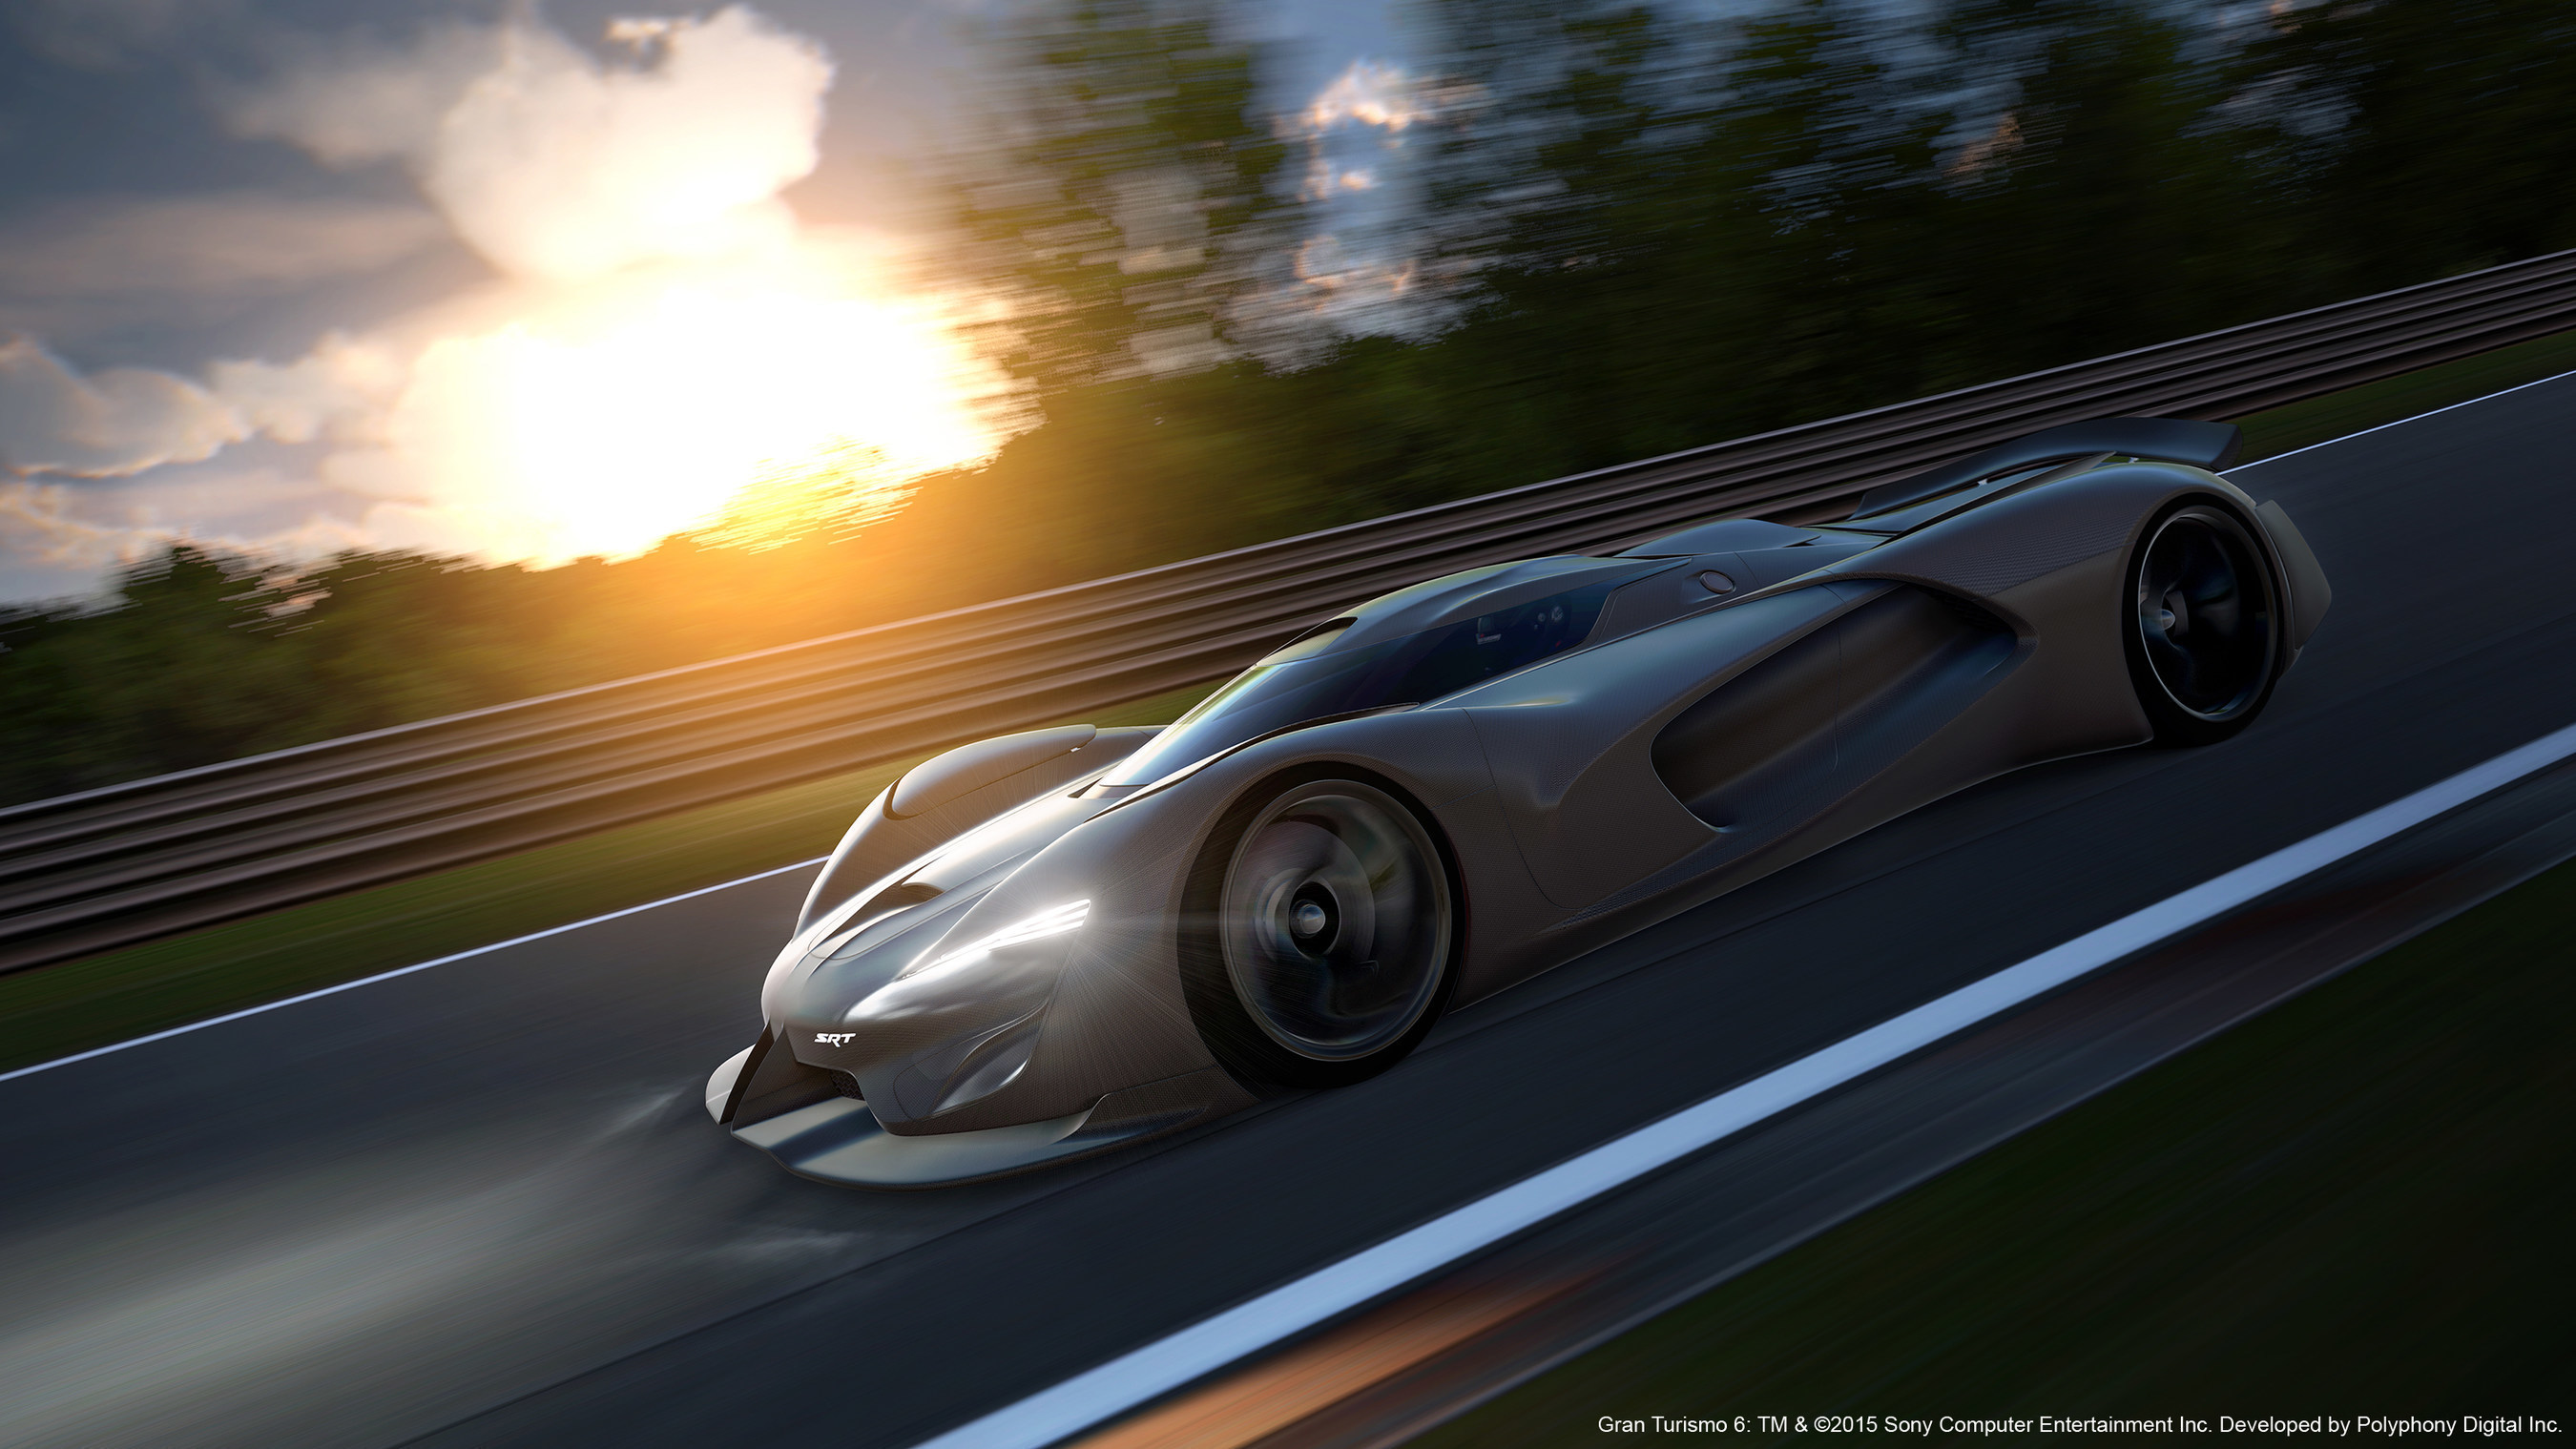 FCA US LLC Looks 20 Years Into the Future With SRT Tomahawk Vision Gran Turismo